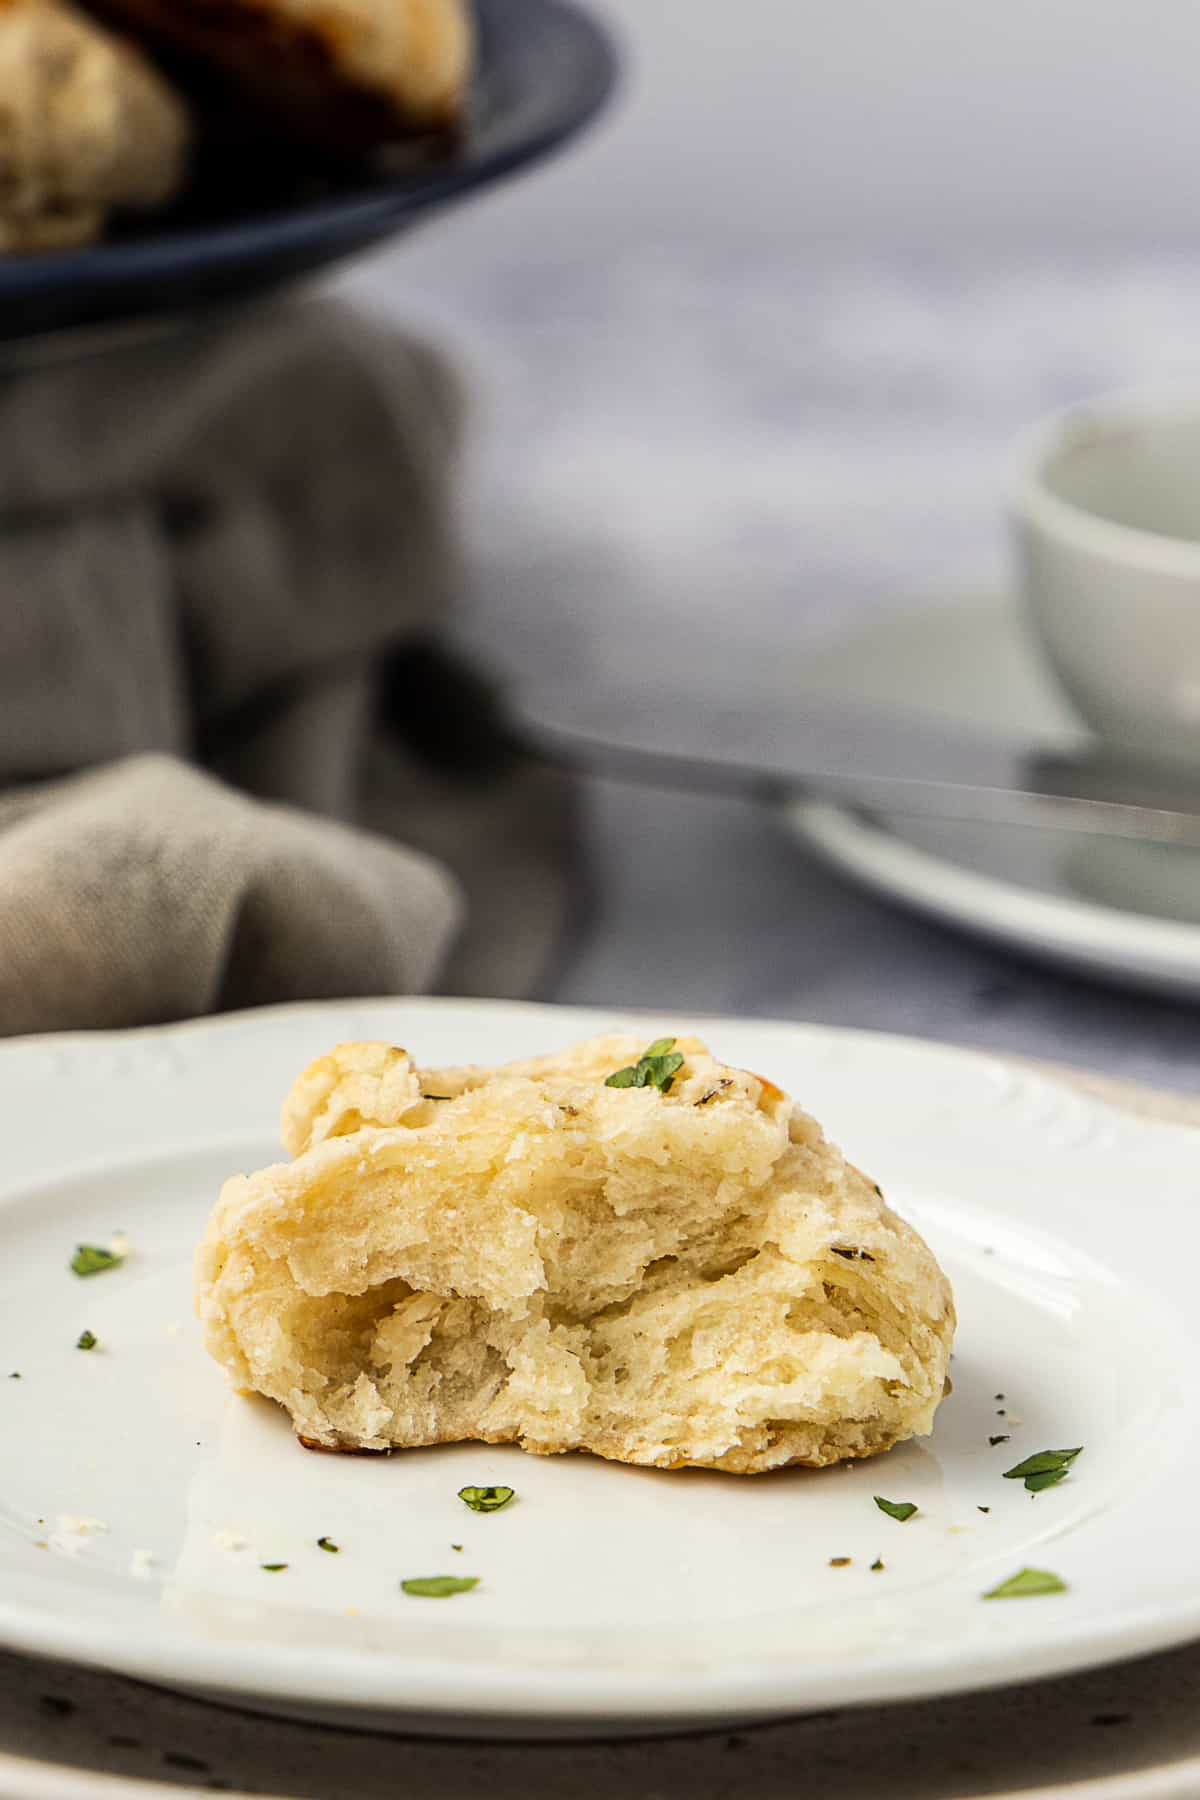 Close up of half a cheese biscuit on a white plate